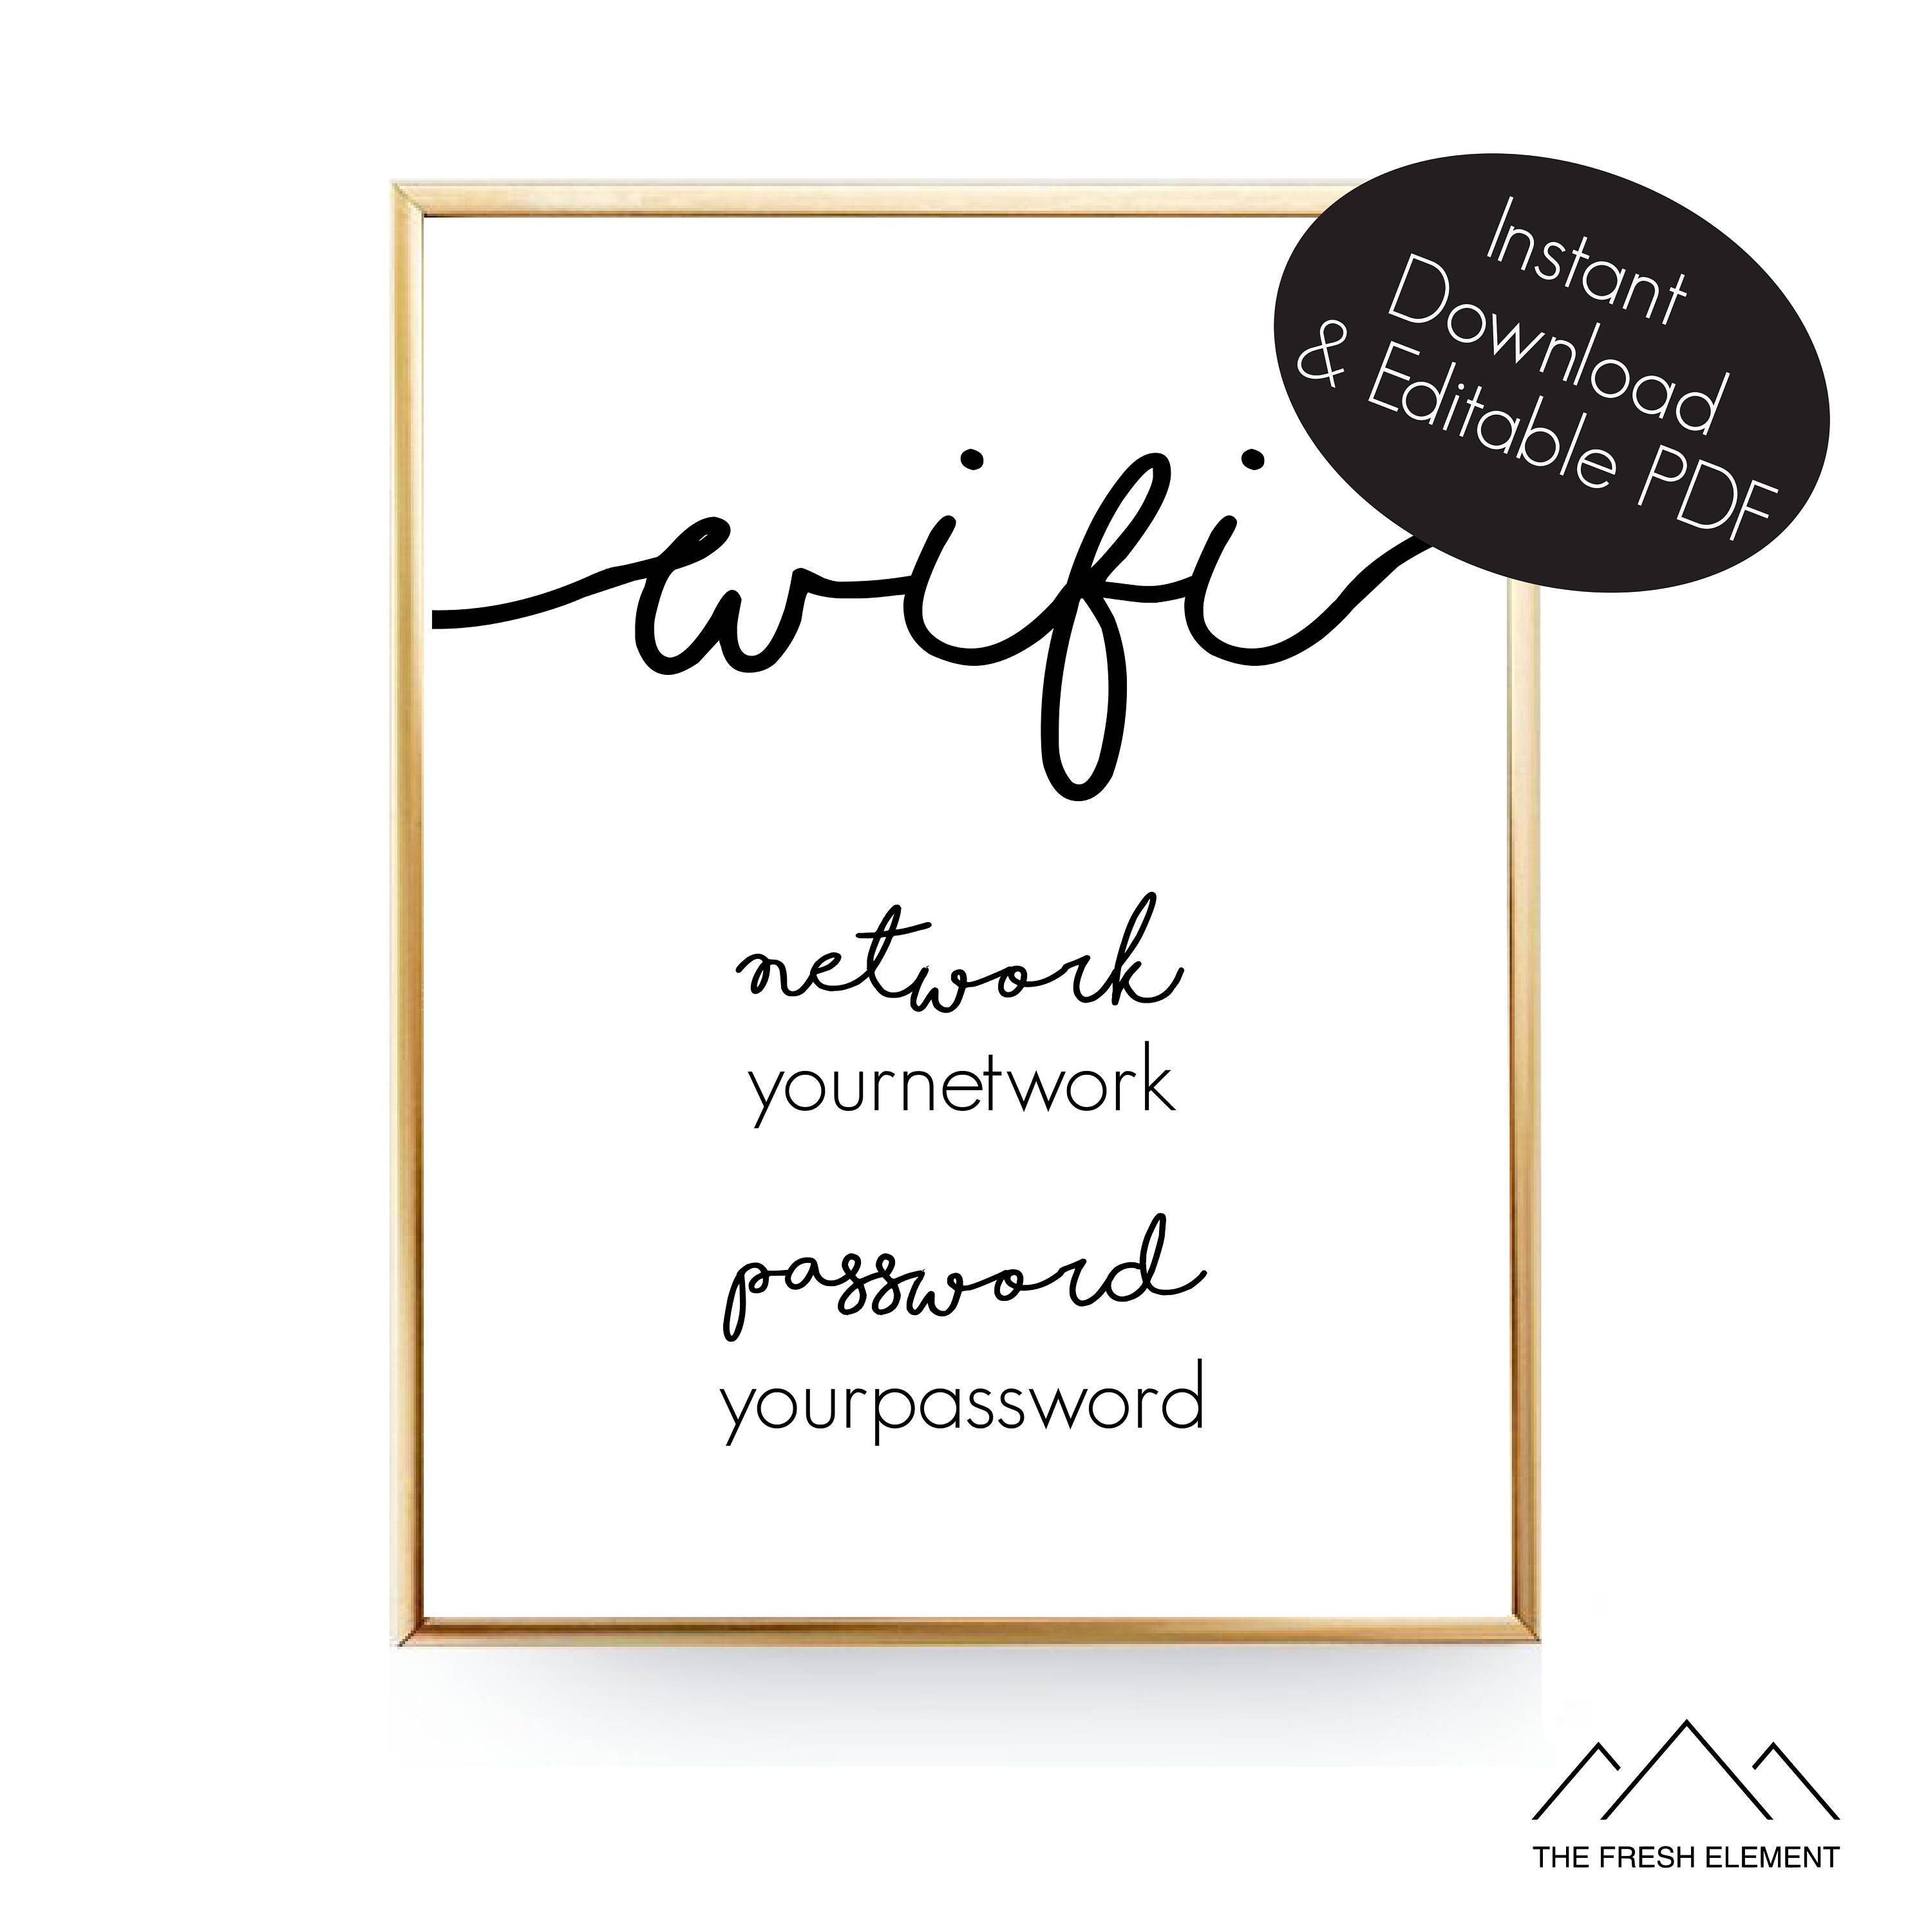 Epic image with printable wifi sign